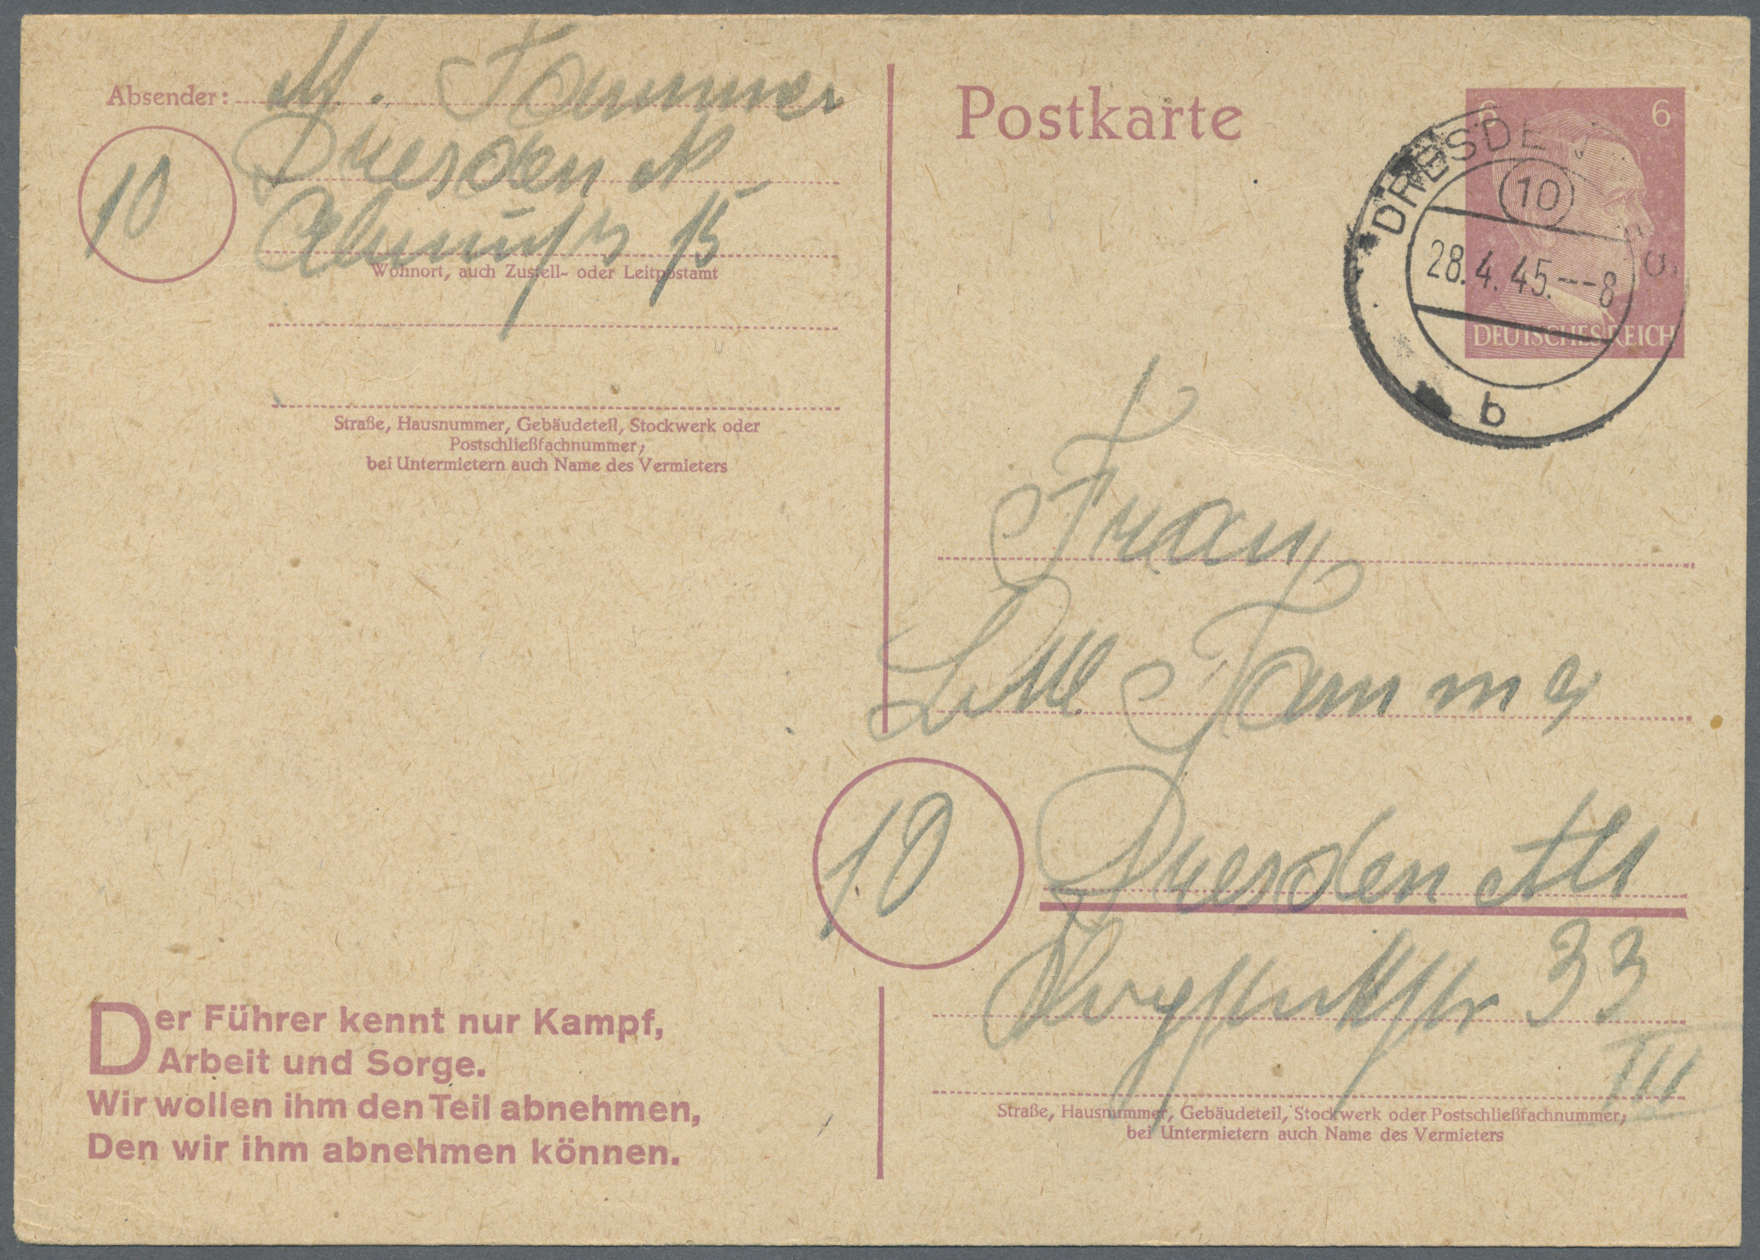 Lot 37175 - Deutsches Reich - Besonderheiten  -  Auktionshaus Christoph Gärtner GmbH & Co. KG Collections Germany,  Collections Supplement, Surprise boxes #39 Day 7